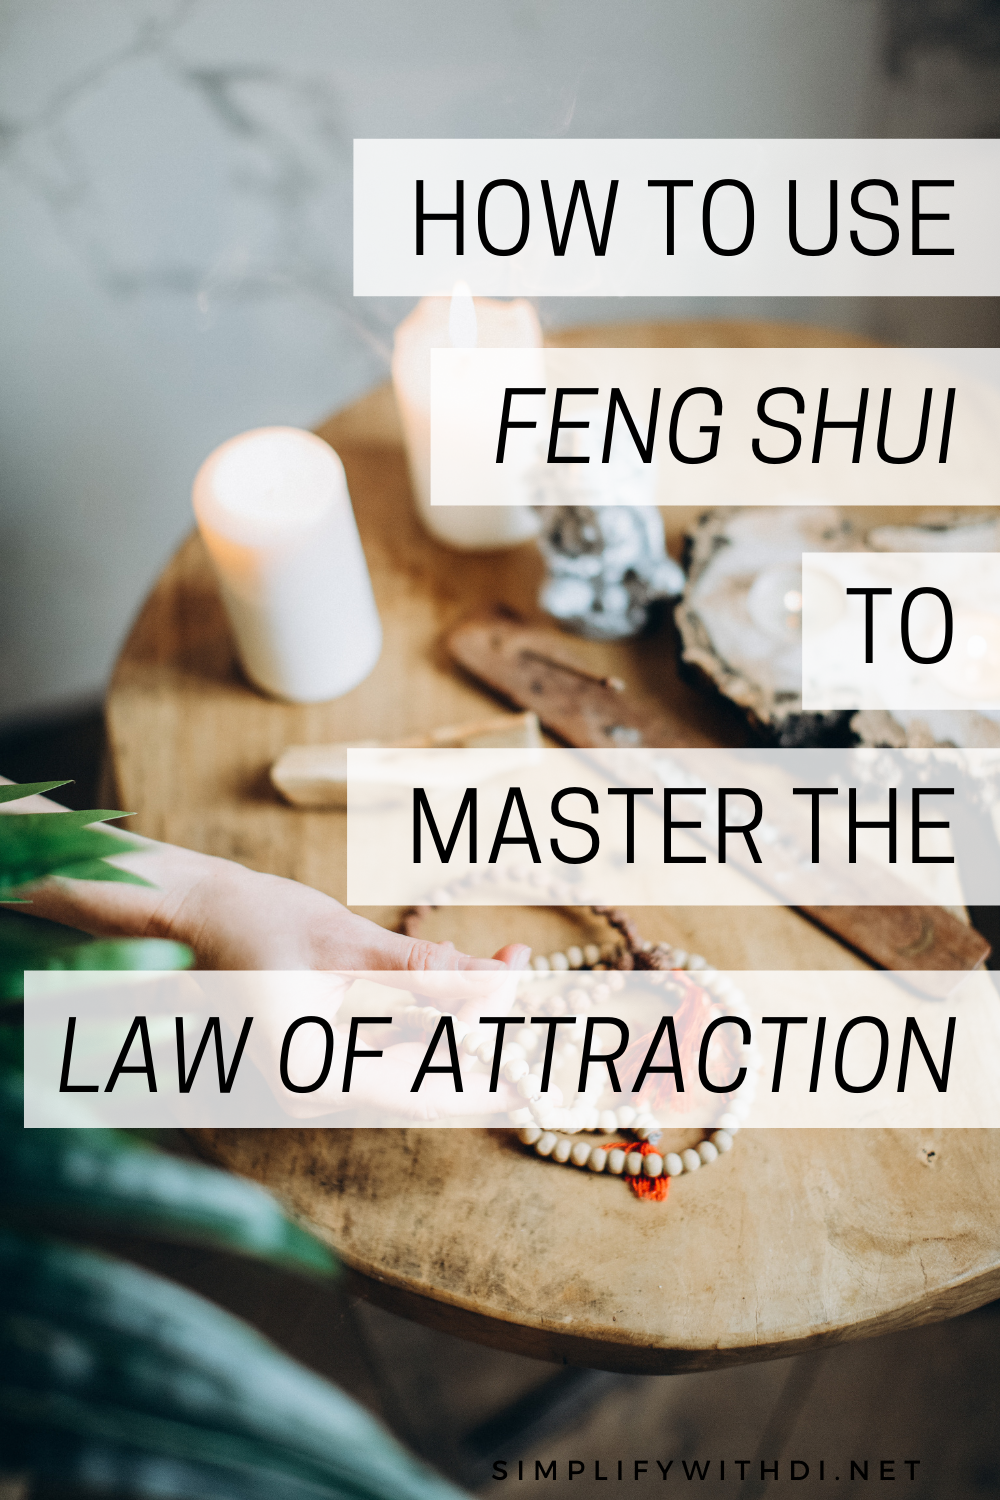 How to Use Feng Shui to Master the Law of Attraction - Simplify With Di